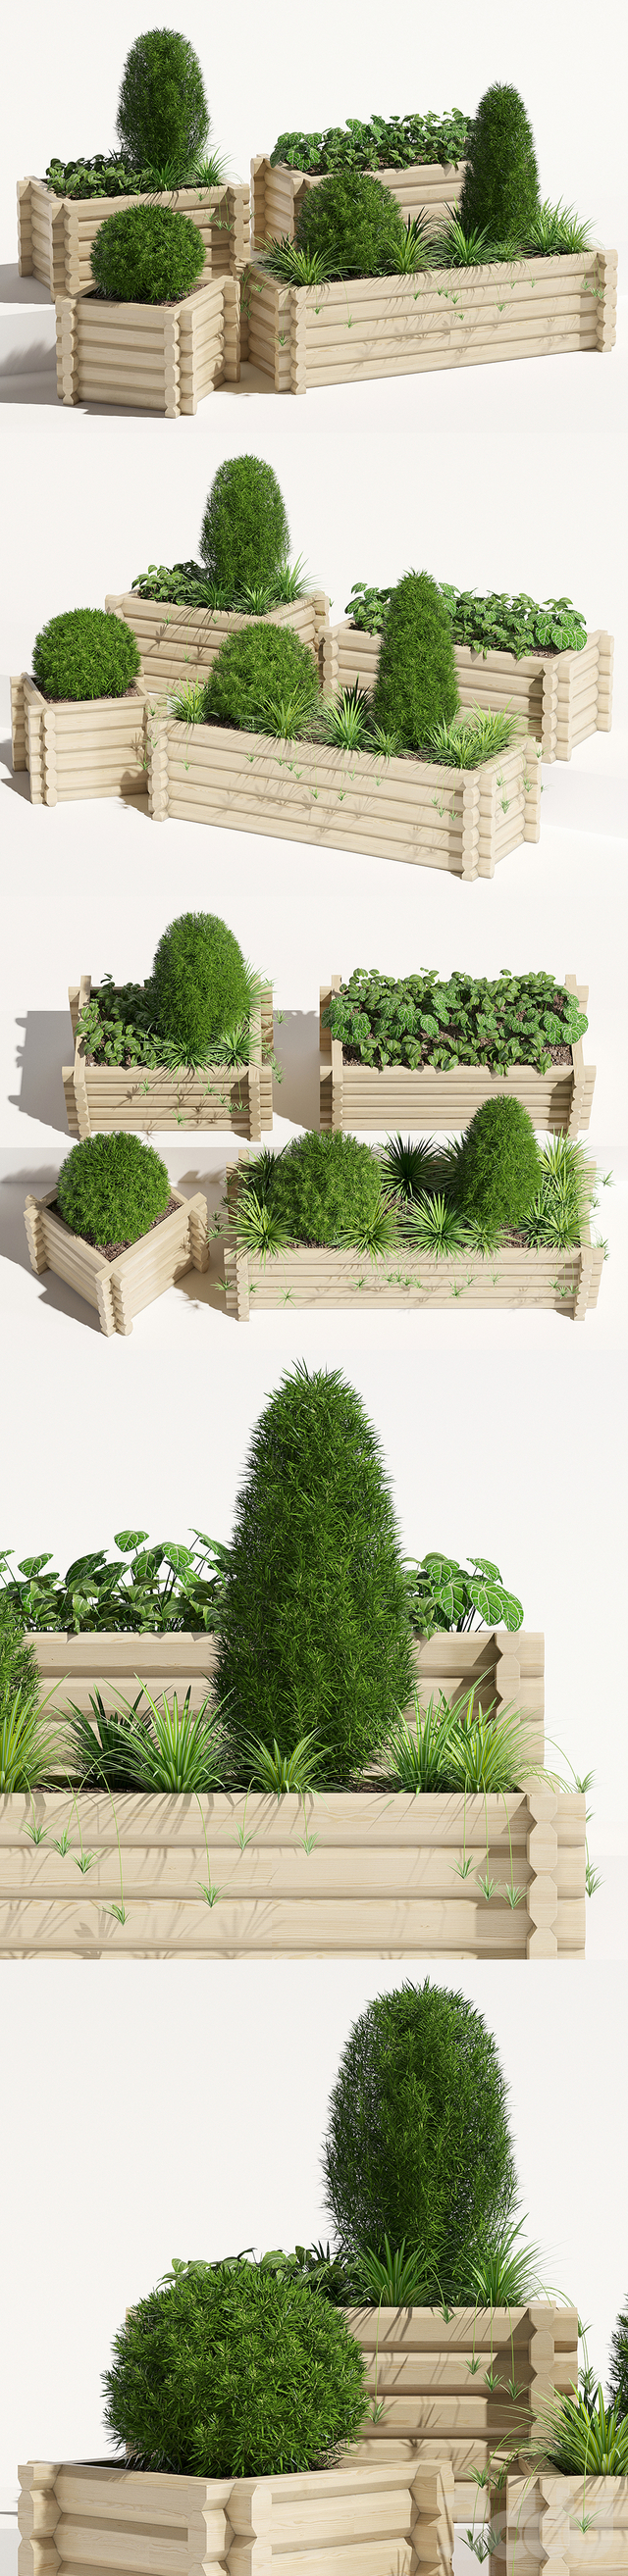 Buildround planter